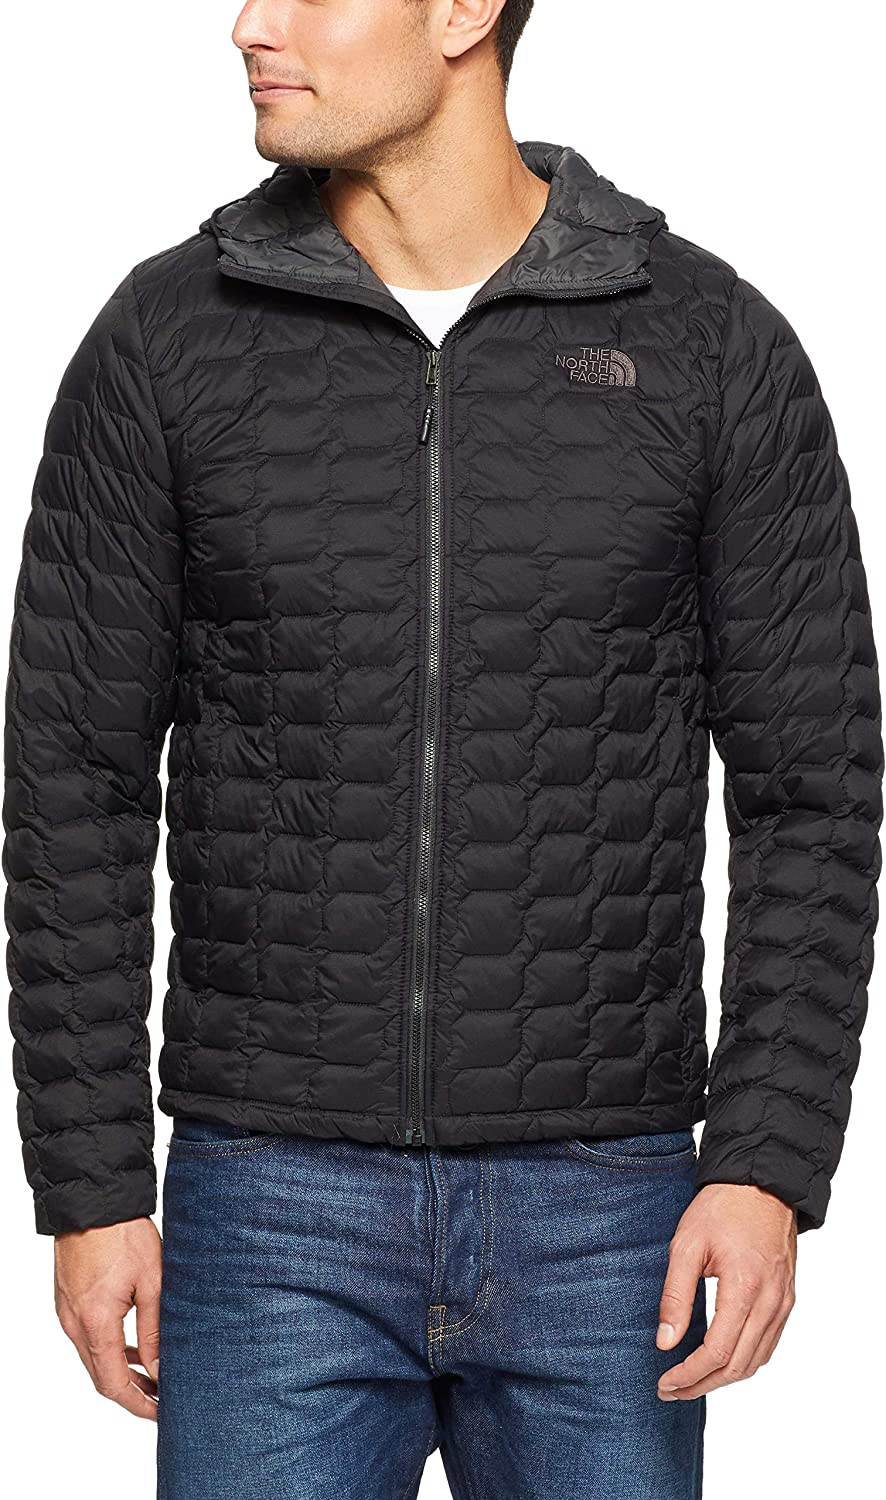 The North Face Men/'s Thermoball Matte Gray Jacket Coat Size Large